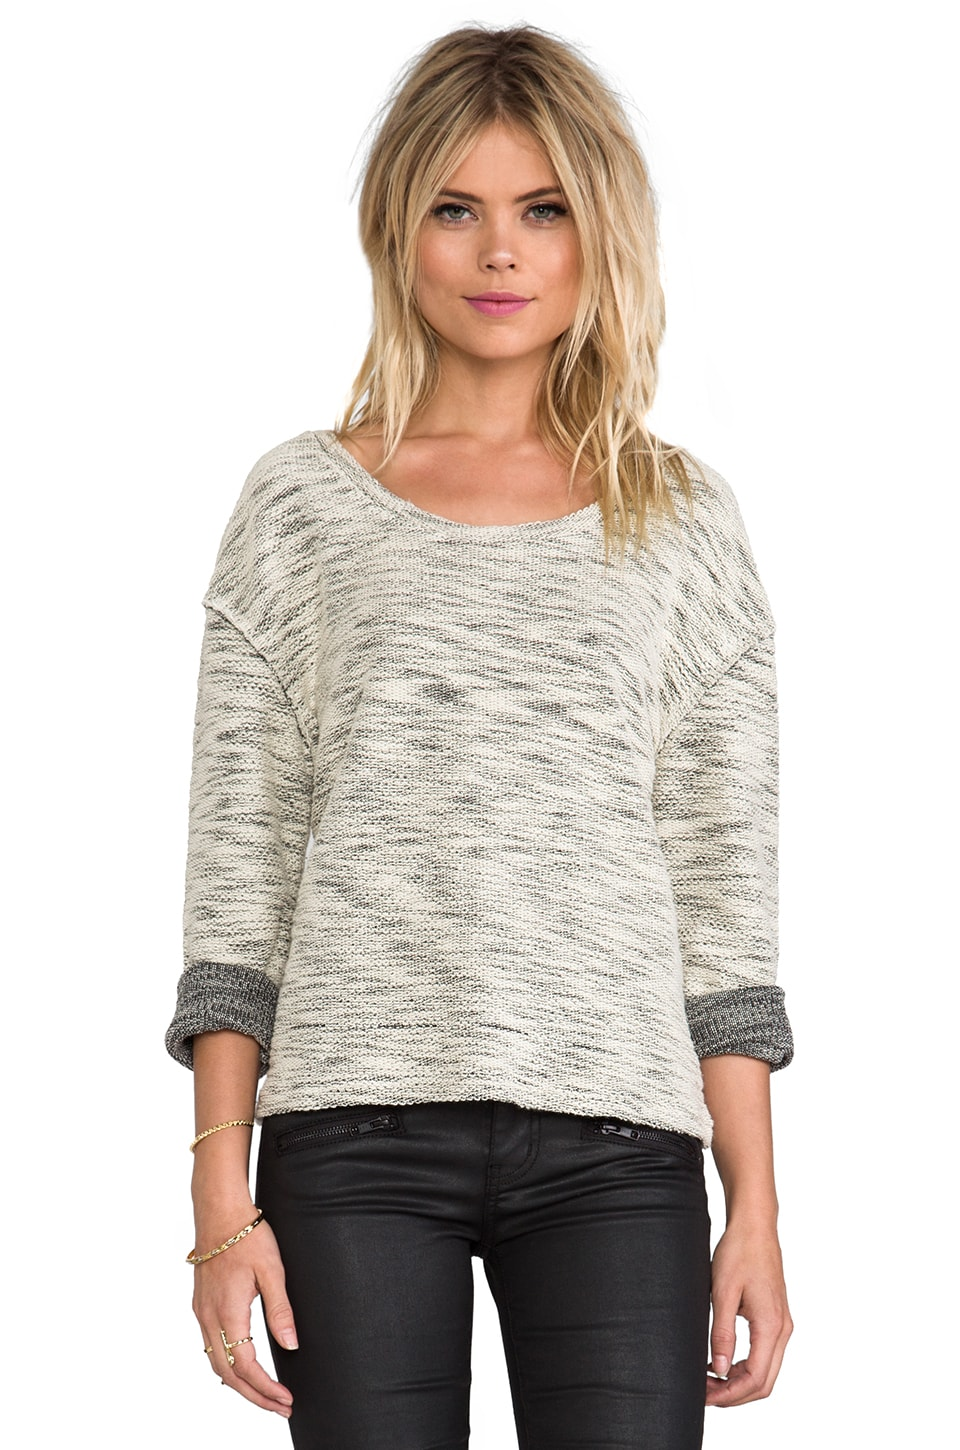 ANINE BING Textured Sweater in Bone Melange